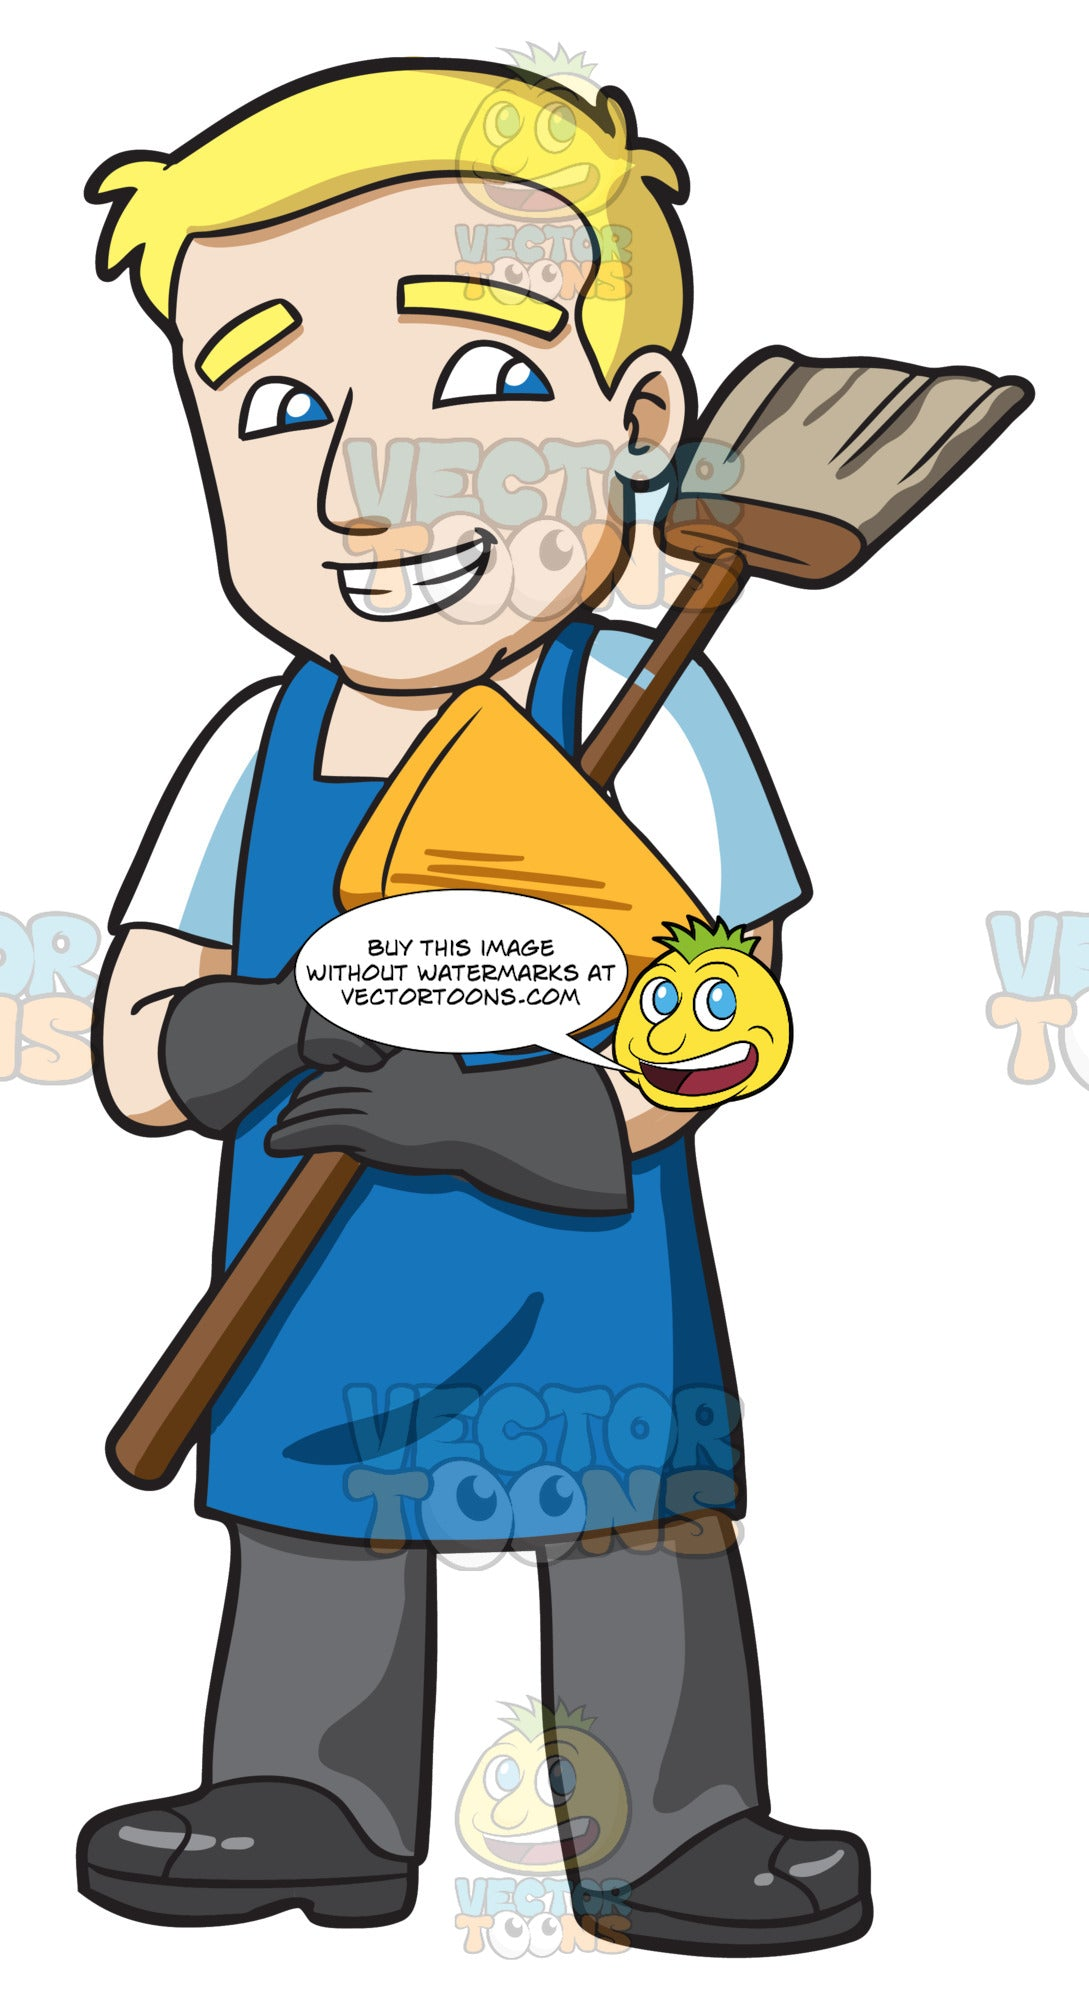 A Janitor Holding A Broom And Dustpan